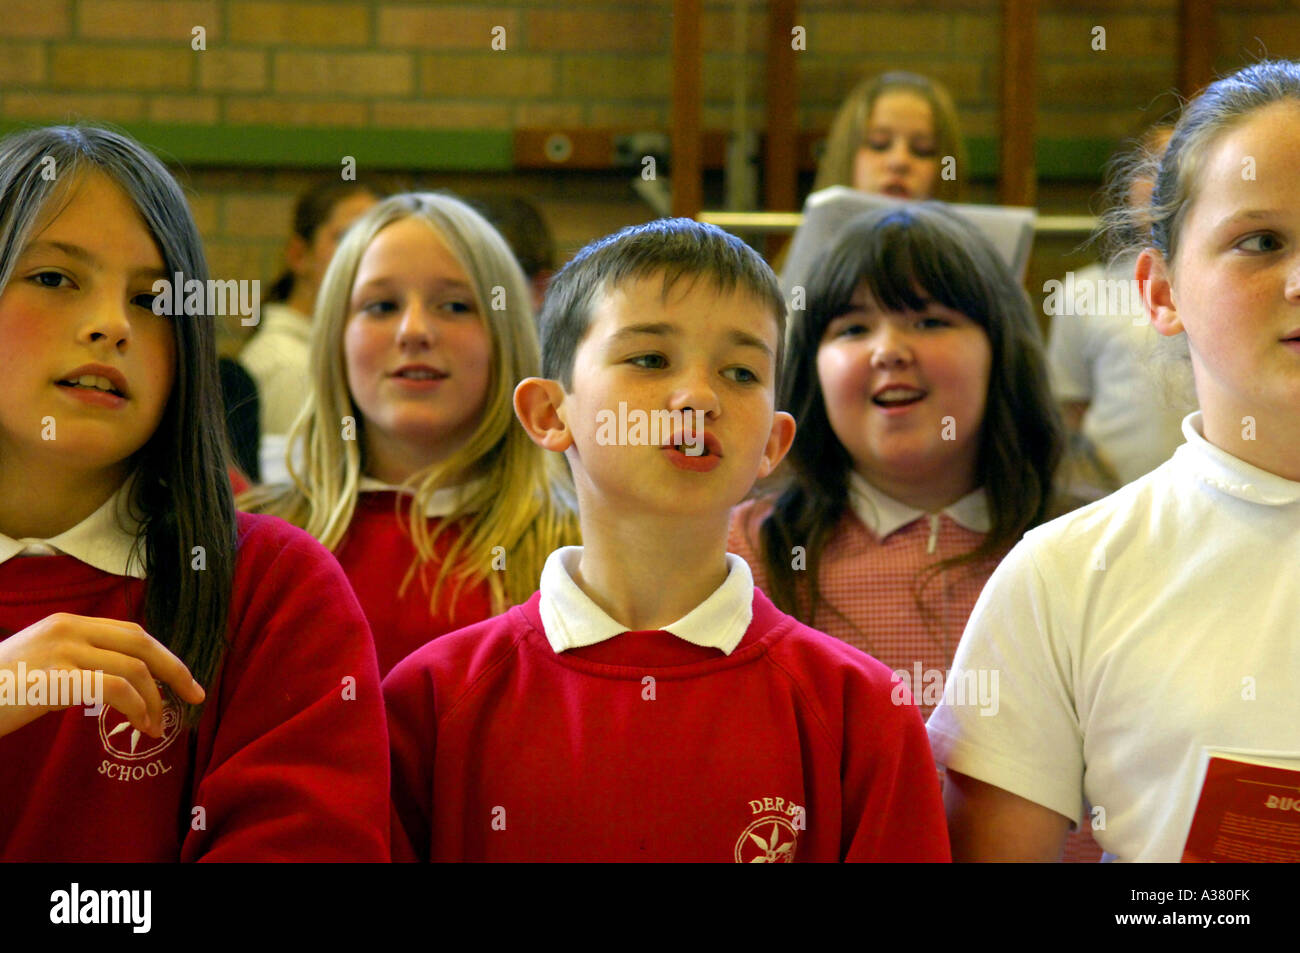 pre teens Stock Photo - school assembly children pupils students pre teens primary  british colour color education learning girls boys red sing singing